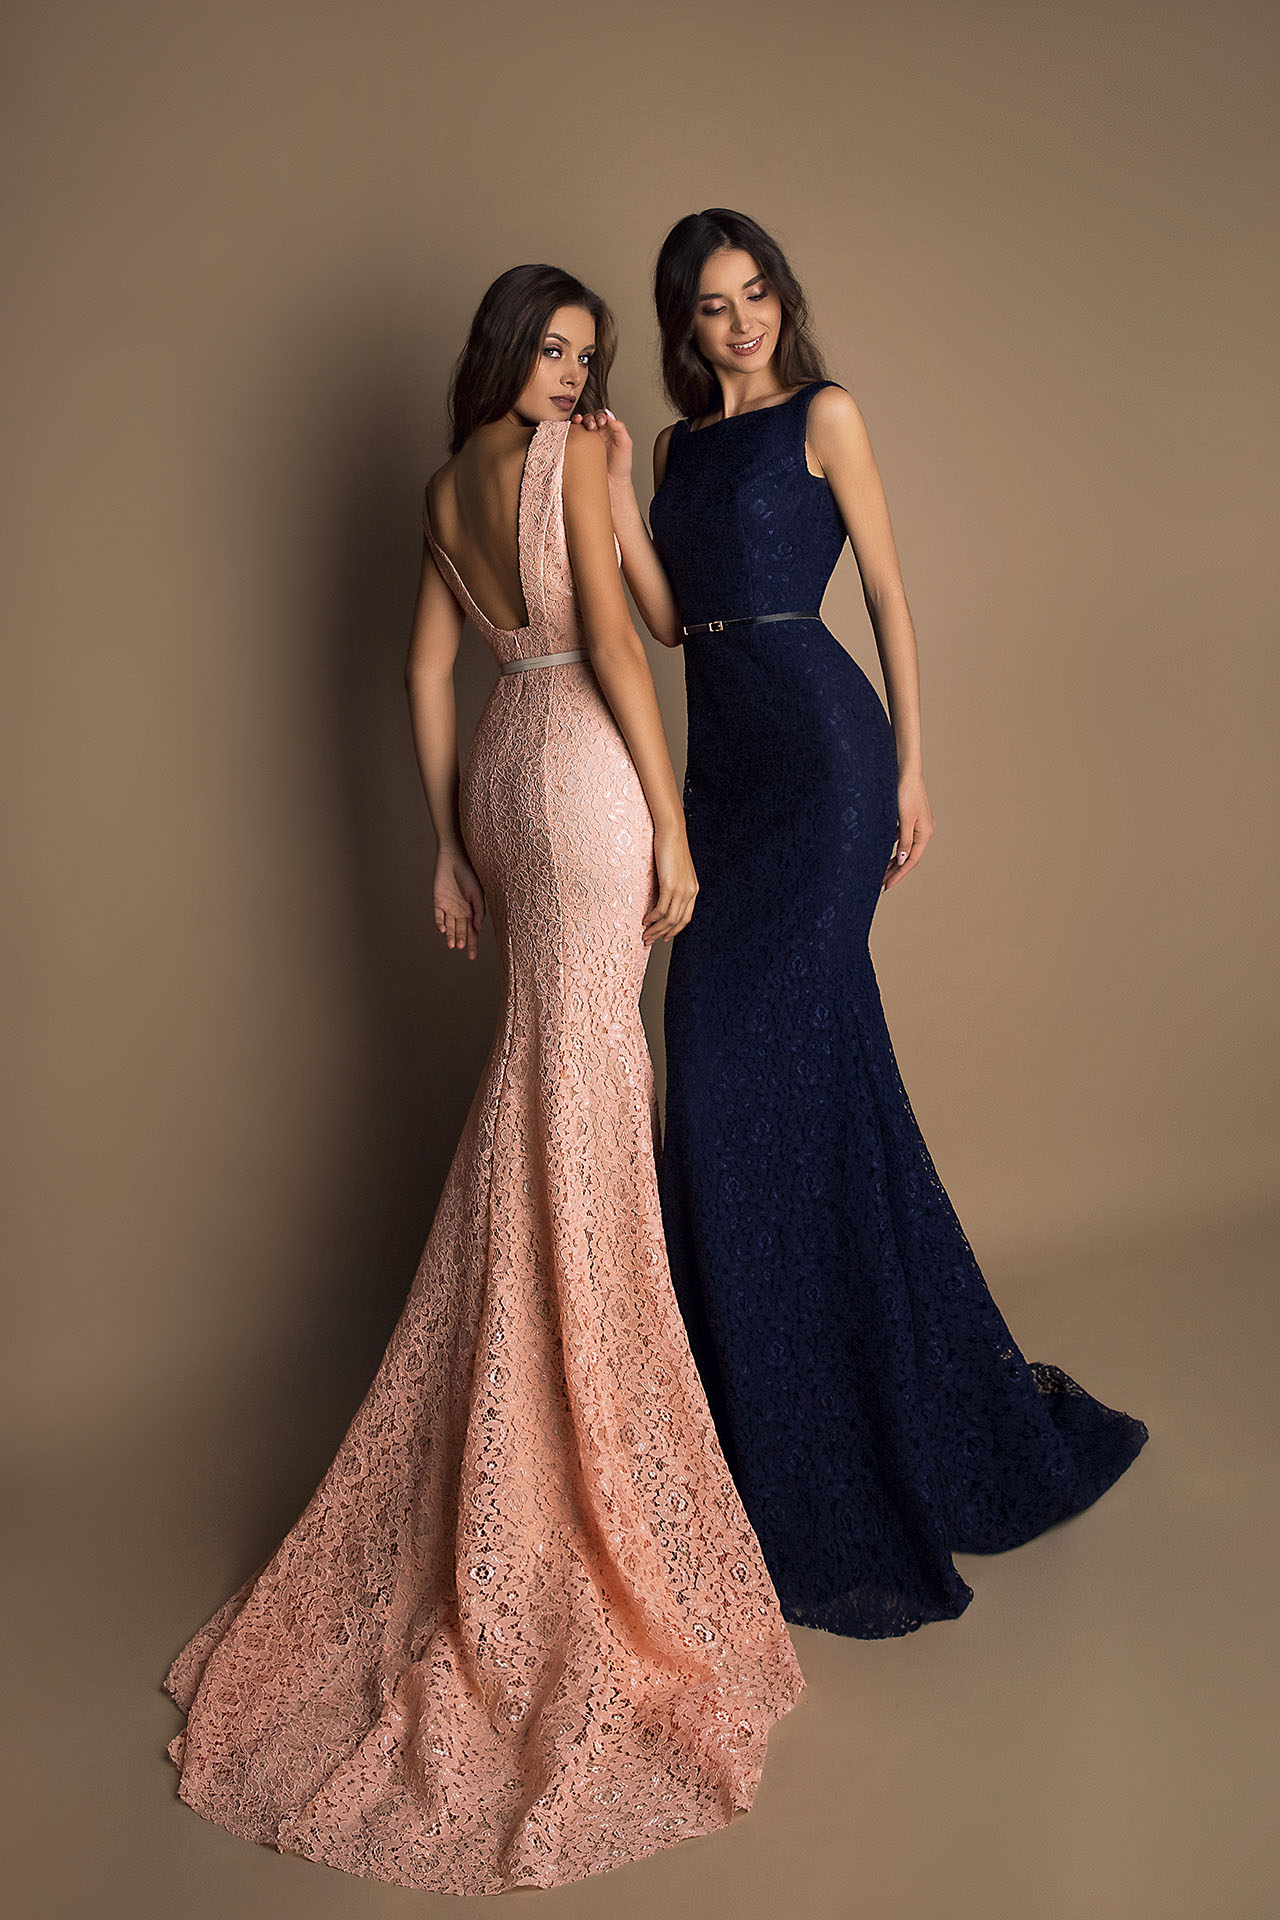 Evening gowns S-1623 peach Silhouette  Fitted  Color  Blue  Peach  Red  Neckline  Bateau (Boat Neck)  Sleeves  Wide straps  Train  With train - foto 2